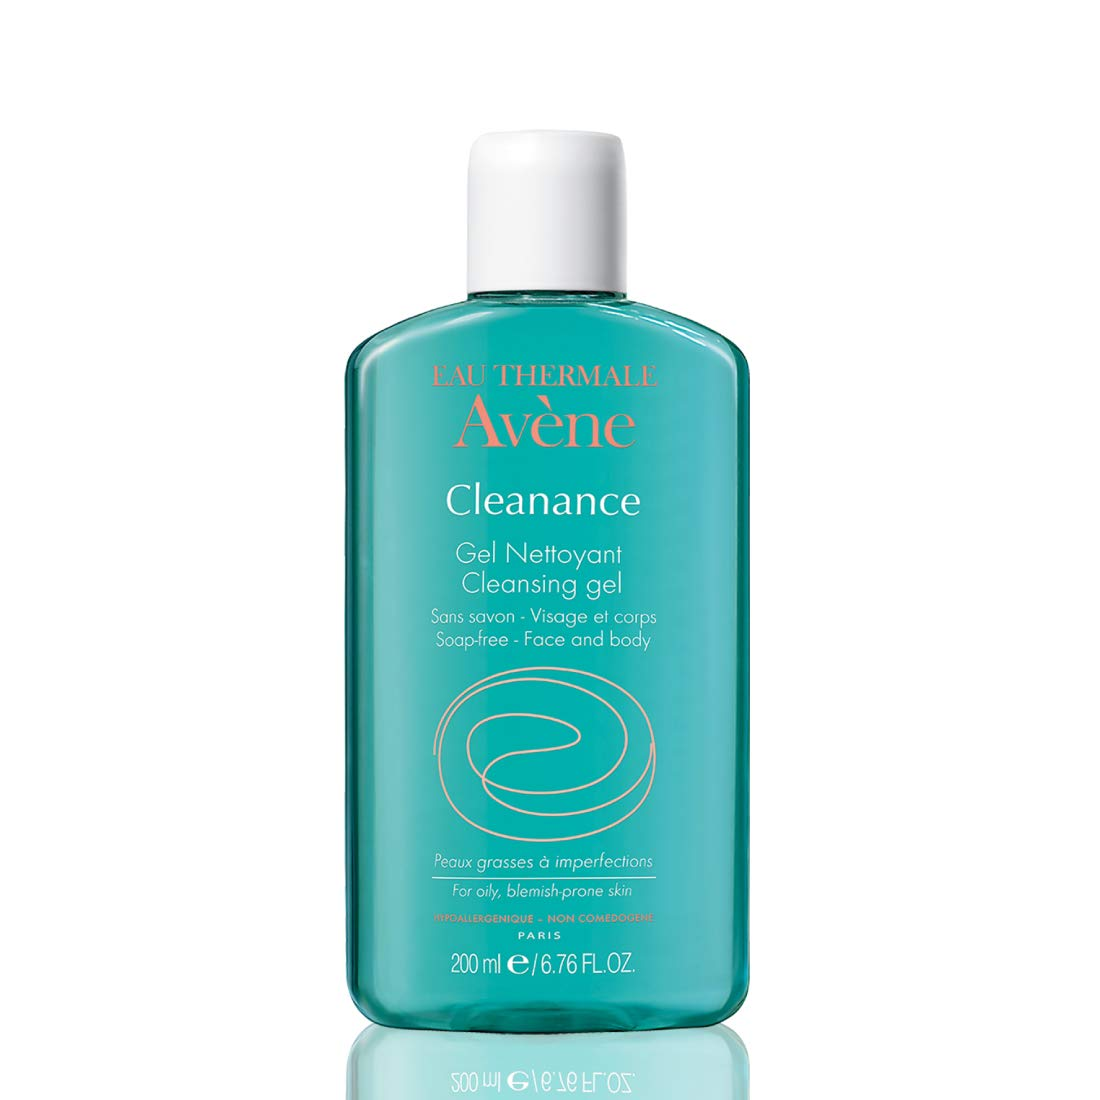 Eau Thermale Avene Cleanance Cleansing Gel Soap Free Cleanser for Acne Prone, Oily, Face & Body